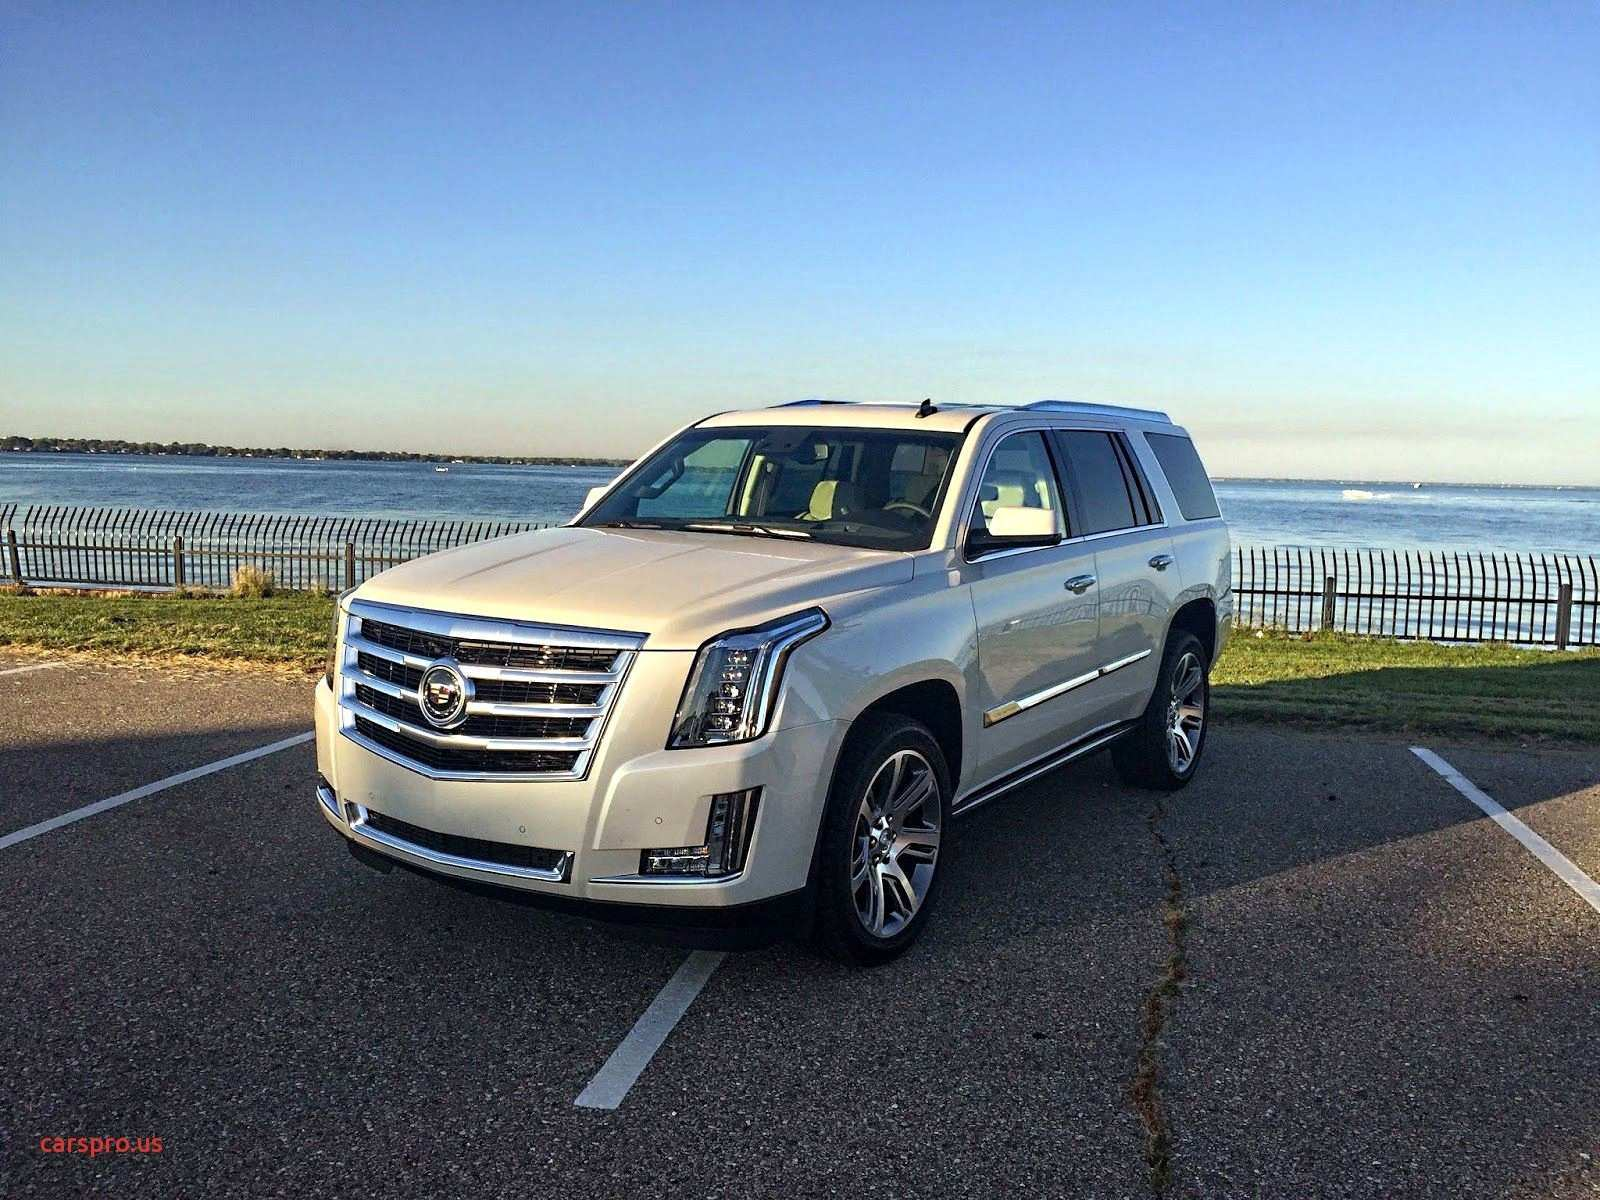 72 All New 2019 Cadillac LTS Price